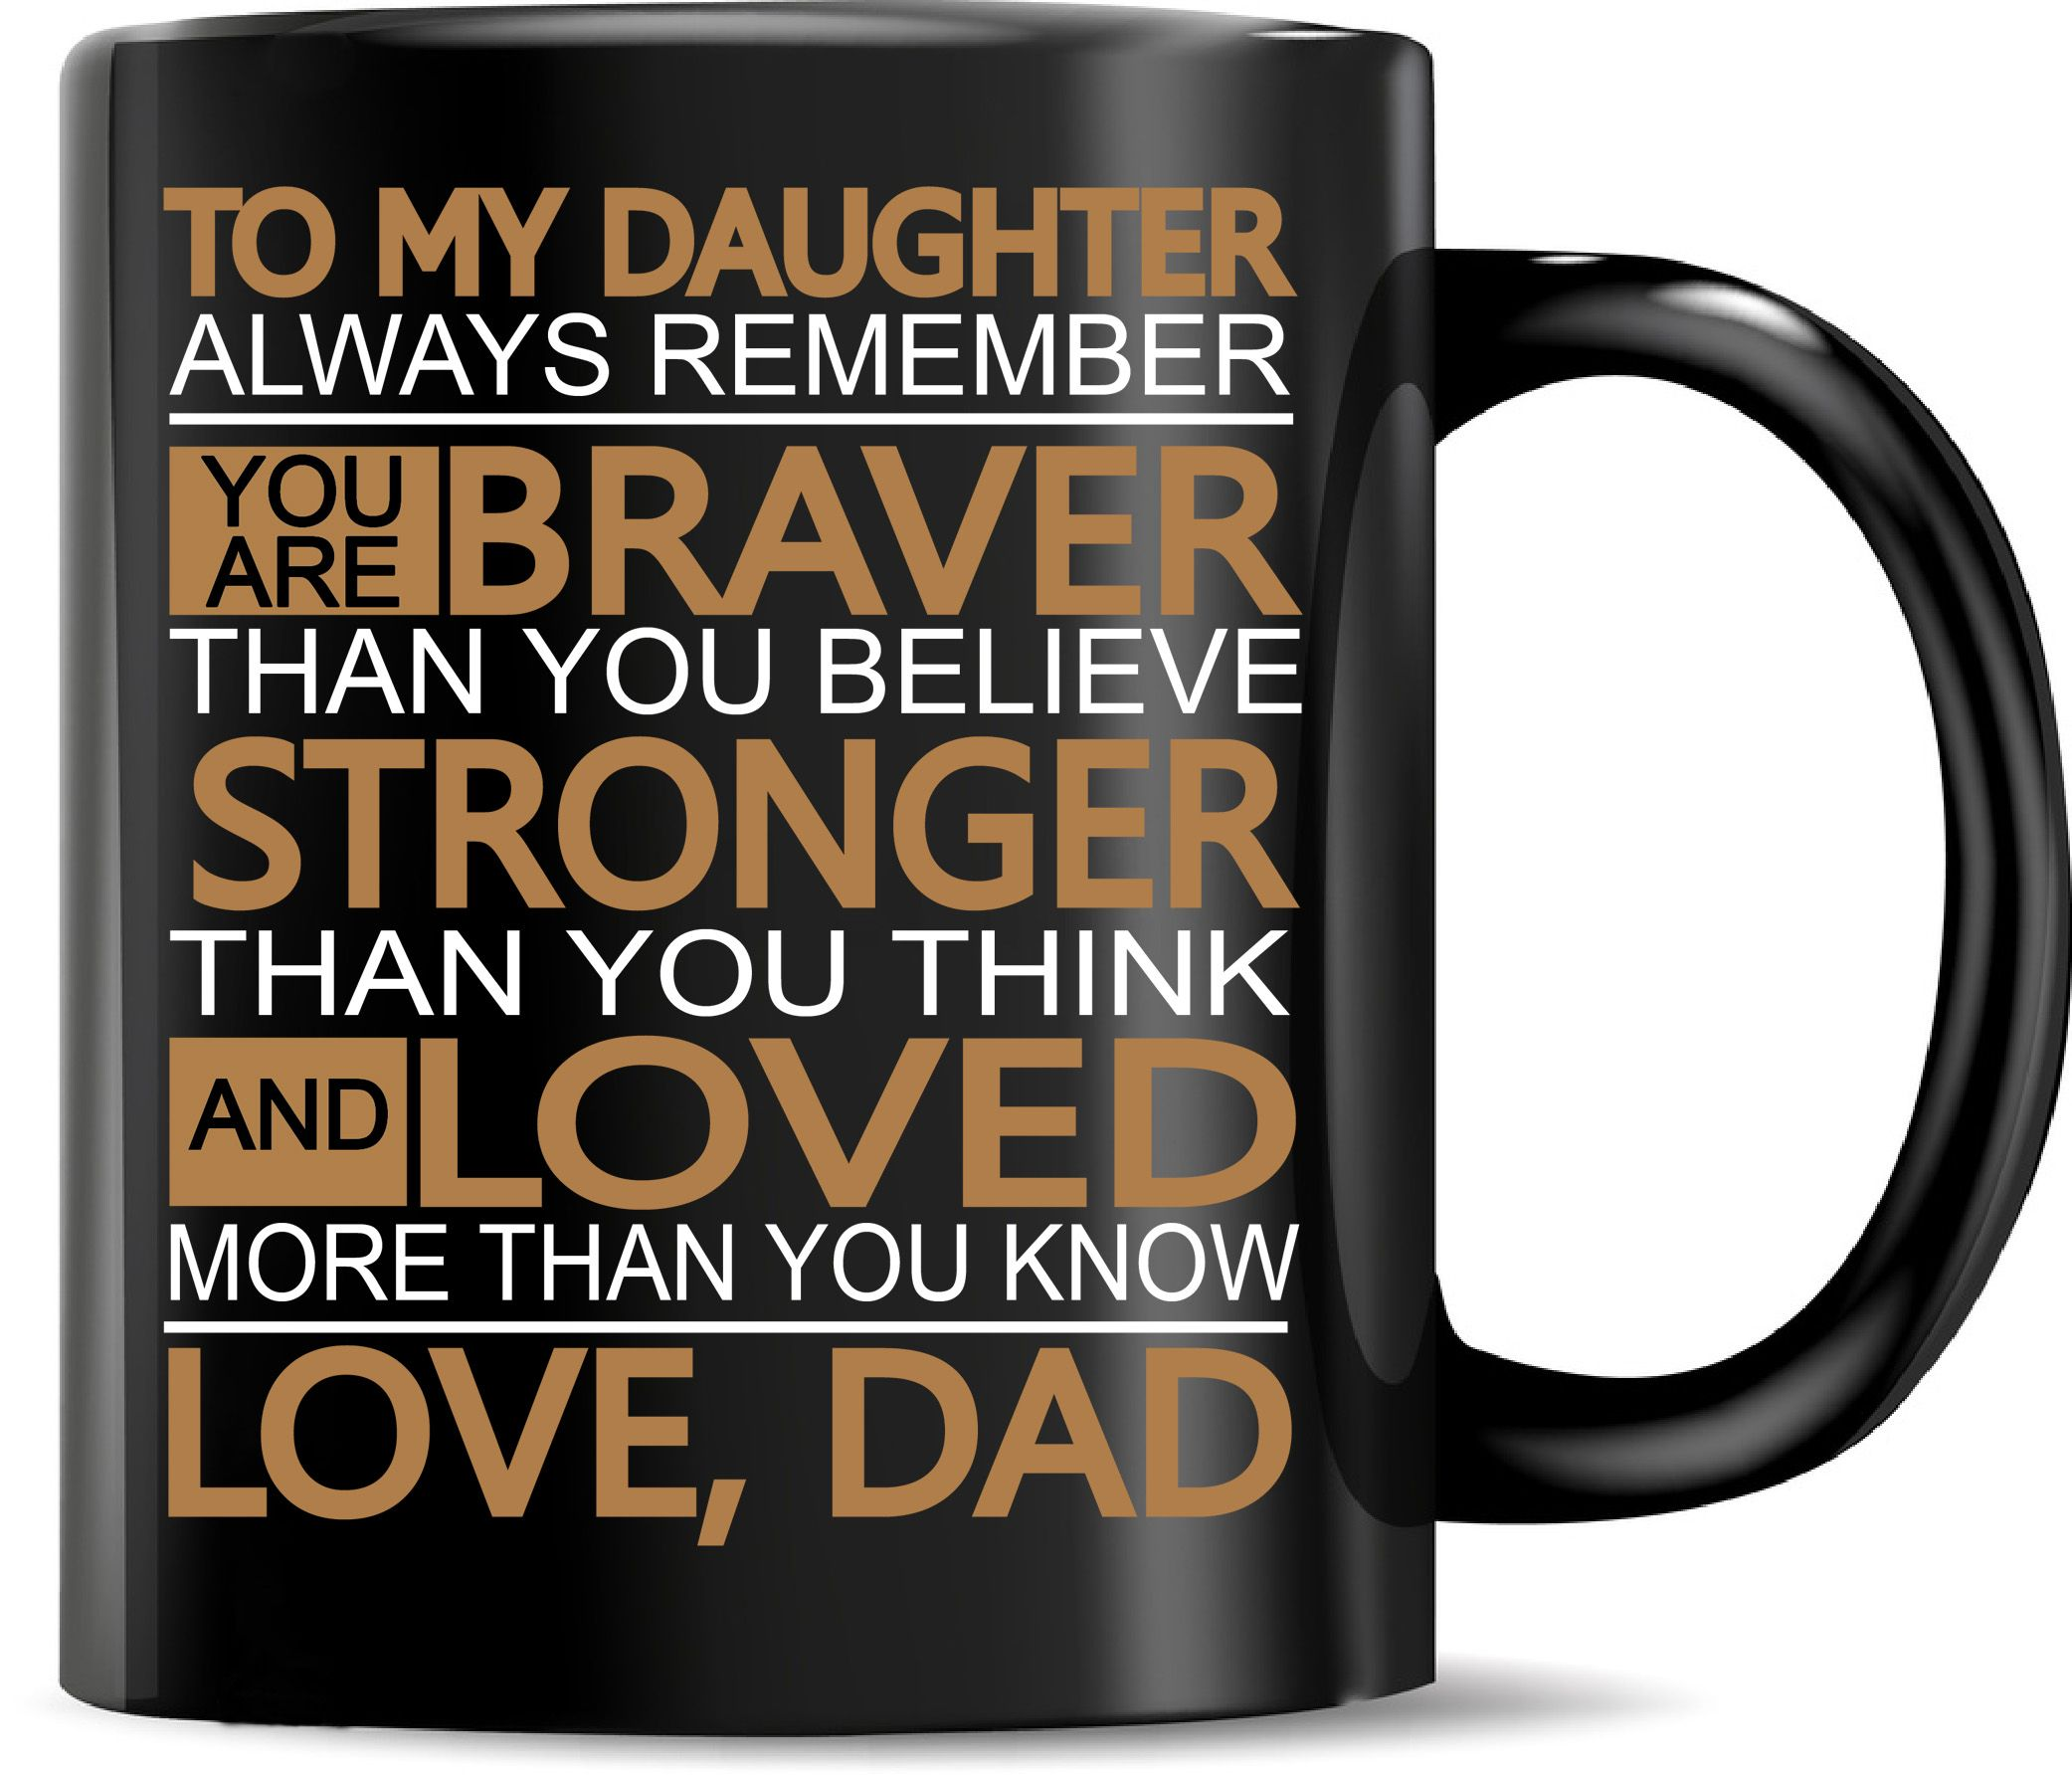 to my daughter you are braver than you believe black color coffee mug gift idea daughter gifts daughter gifts ideas valentines day gift daughter mug